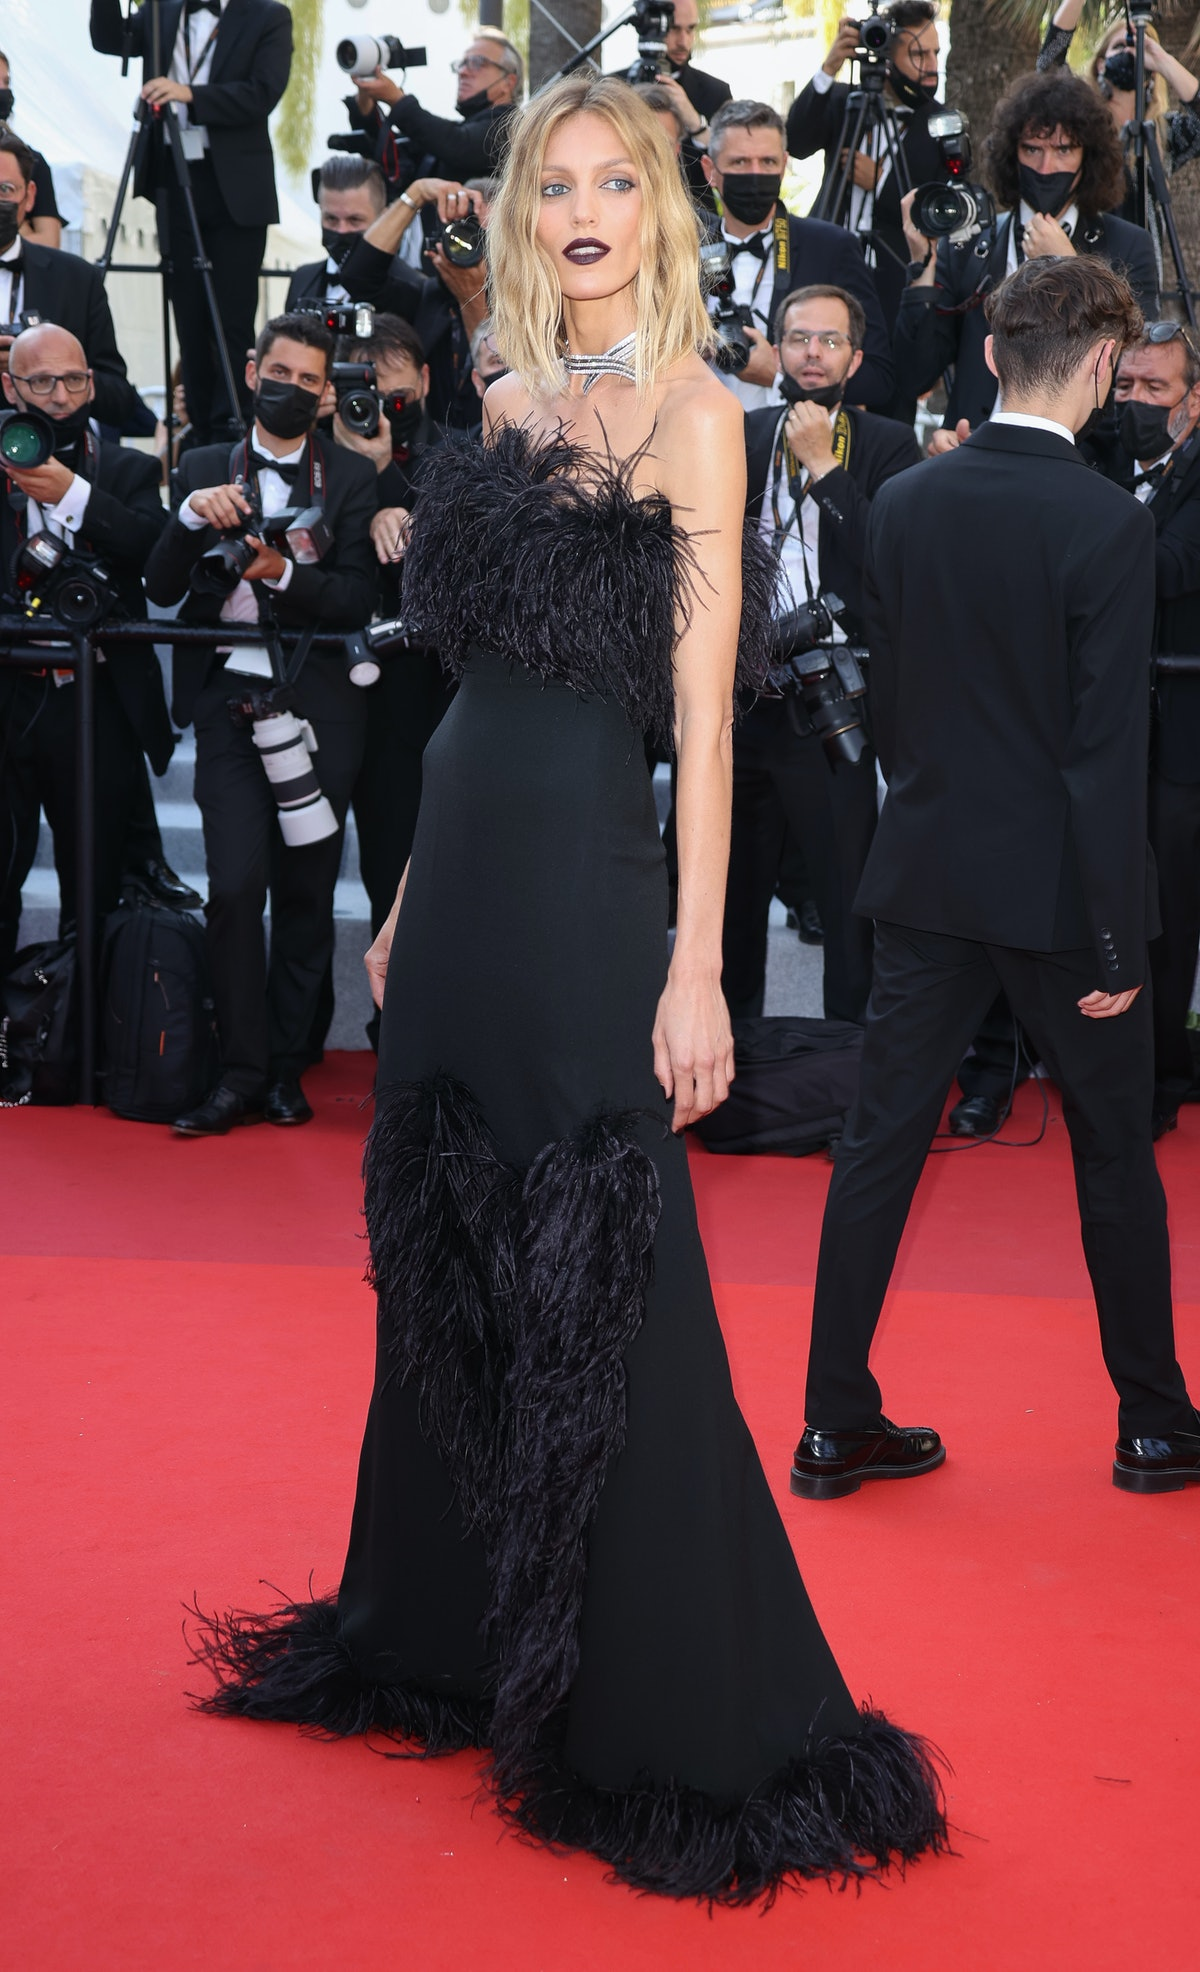 """CANNES, FRANCE - JULY 10: Anja Rubik attends the """"De Son Vivient (Peaceful)"""" screening during the 74th annual Cannes Film Festival on July 10, 2021 in Cannes, France. (Photo by Mike Marsland/WireImage)"""